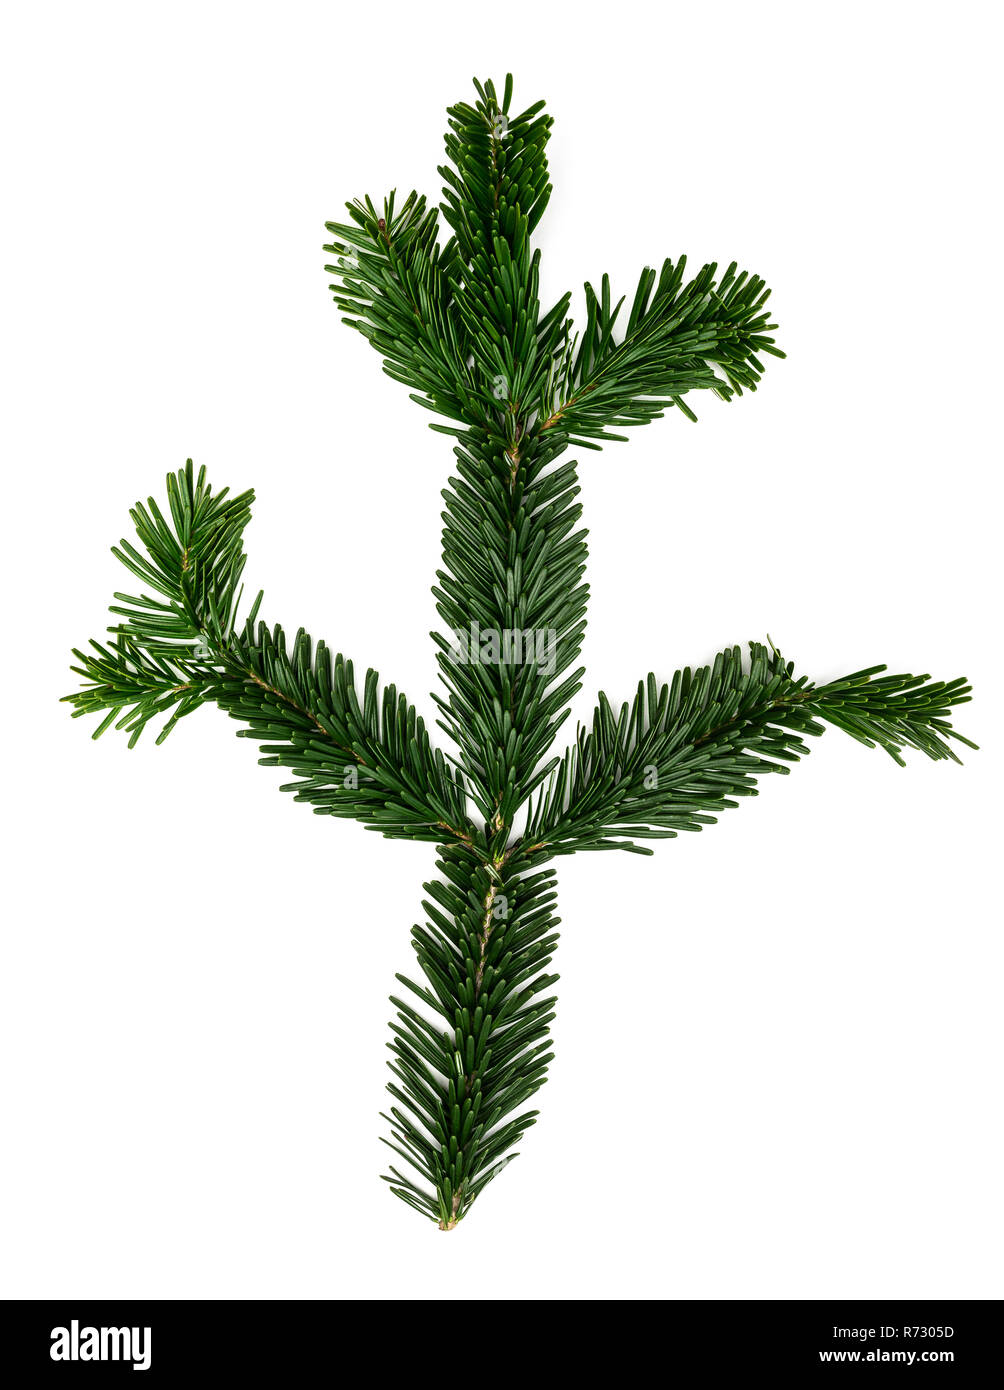 fir twig or branch isolated on white background - Stock Image